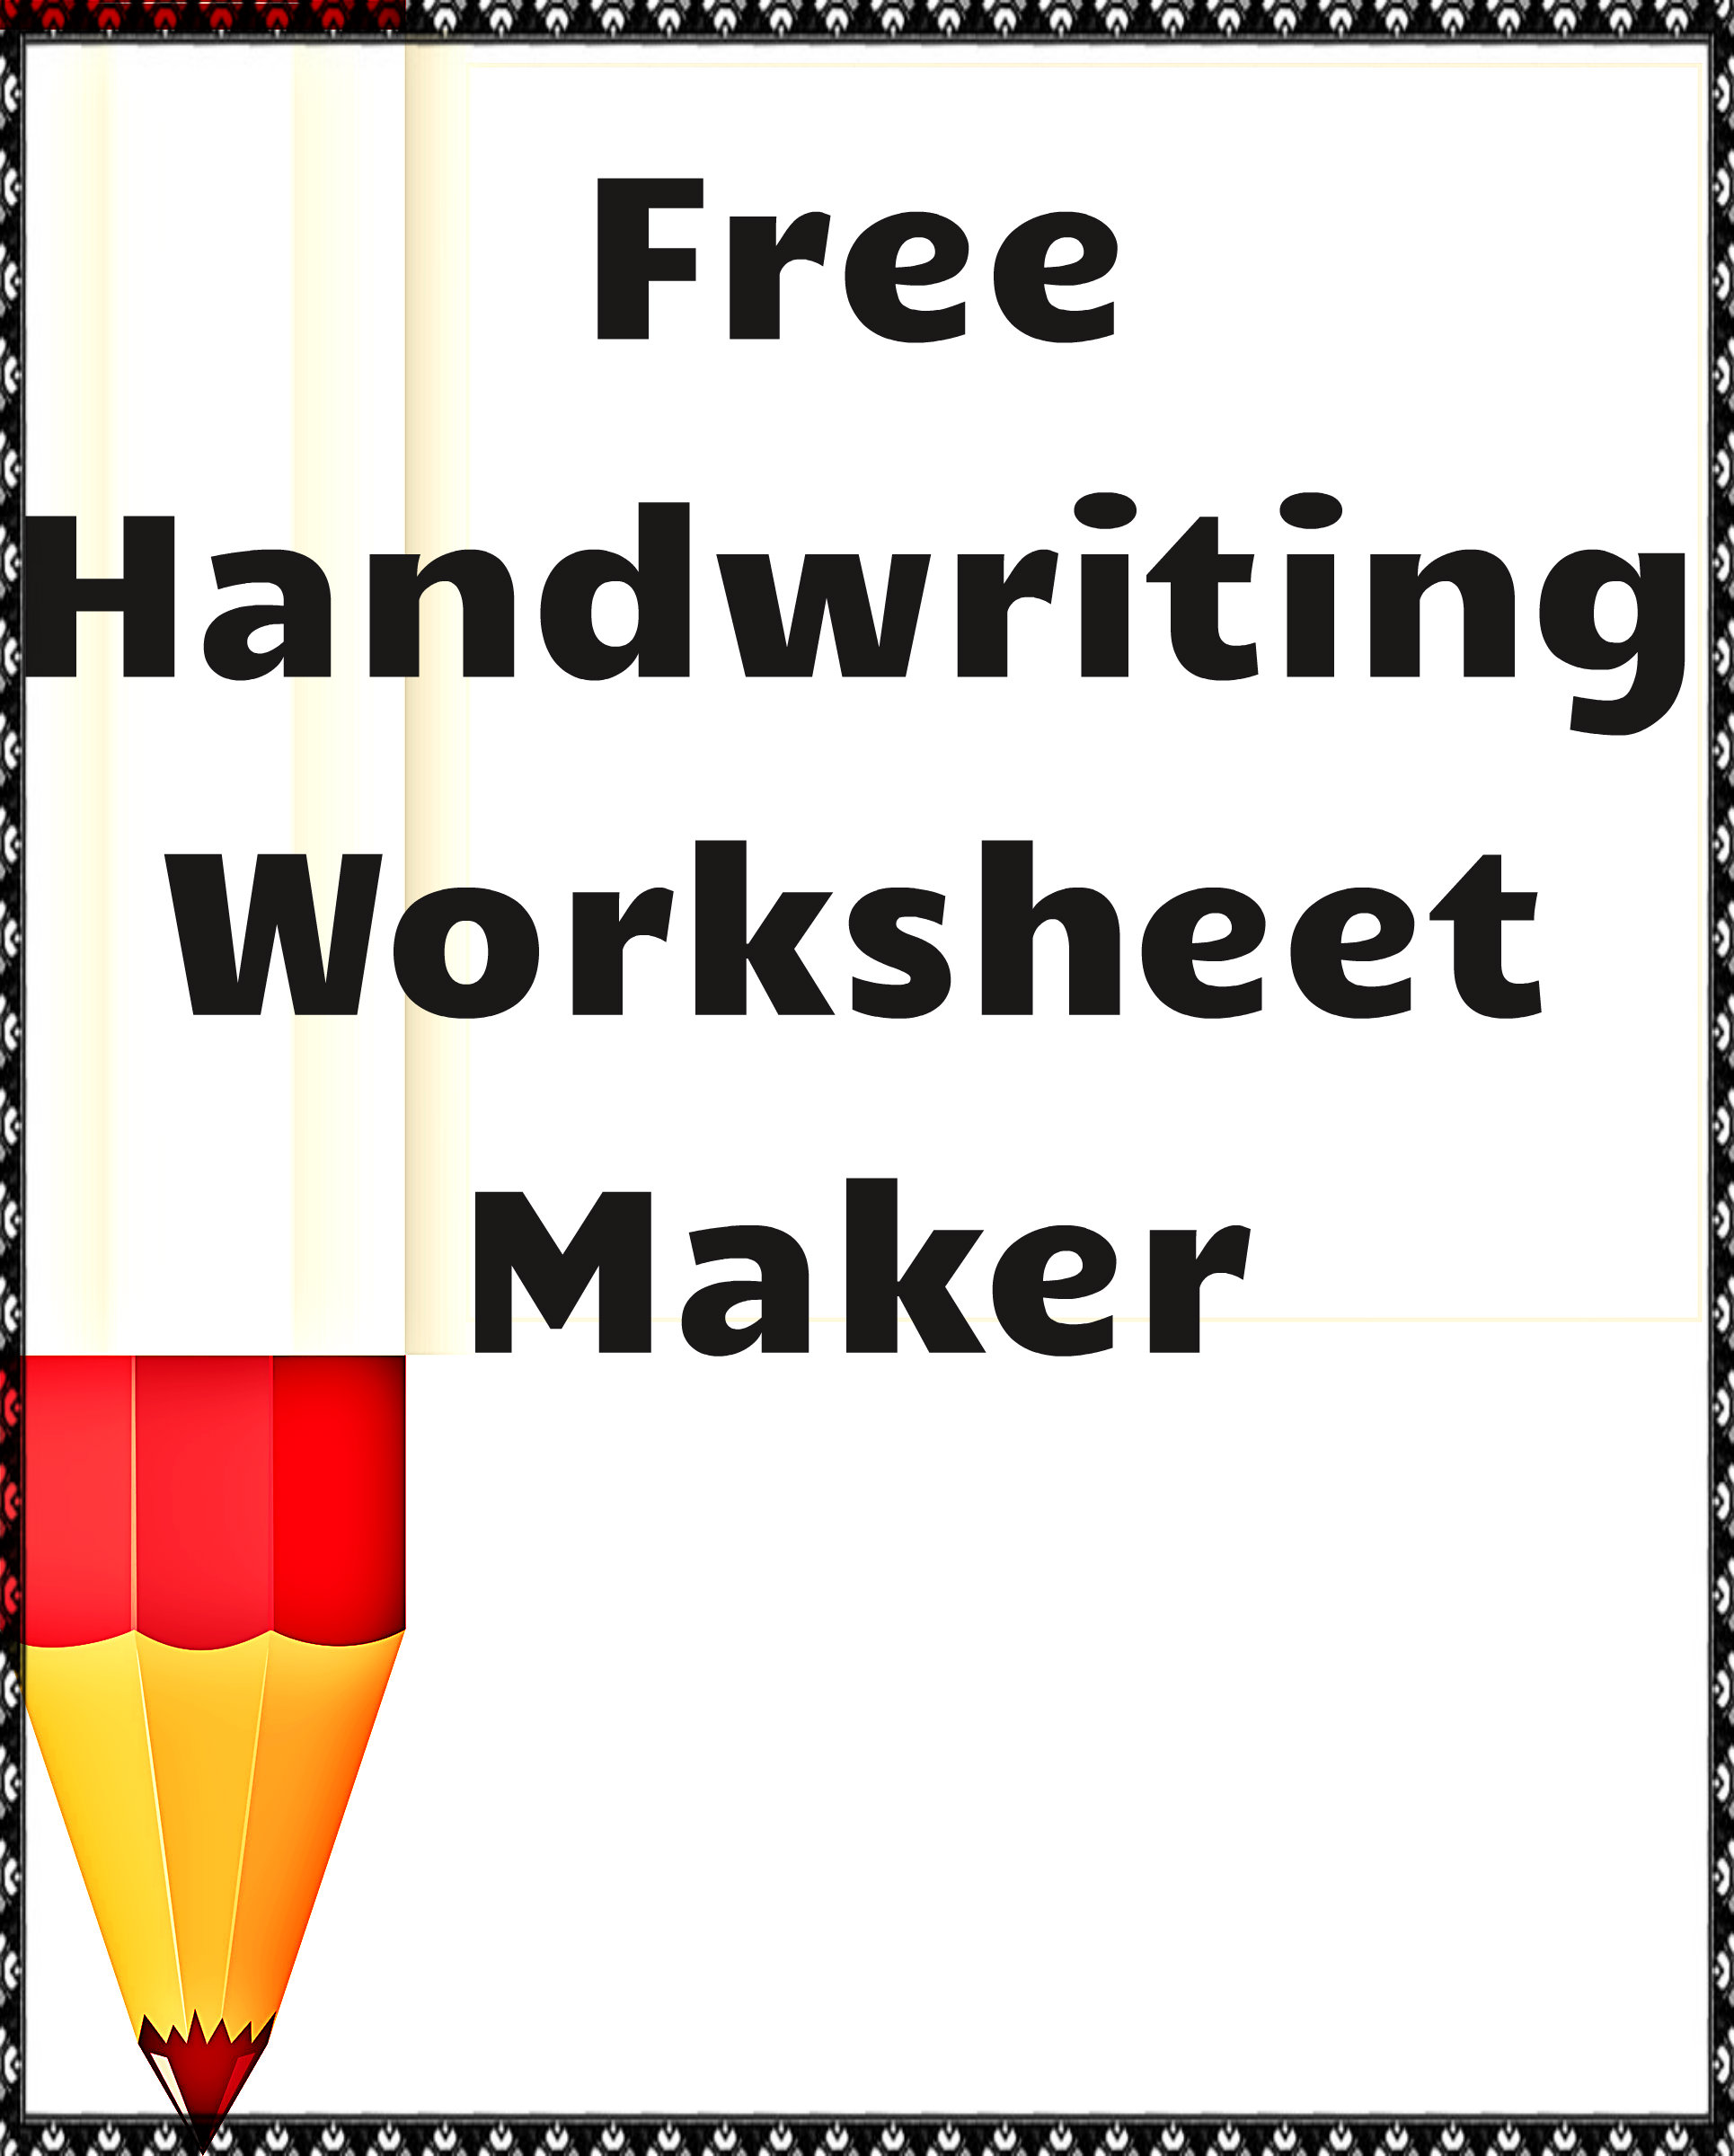 Worksheet Free Handwriting Worksheet Maker handwriting worksheet maker free classroom tools readyteacher com maker